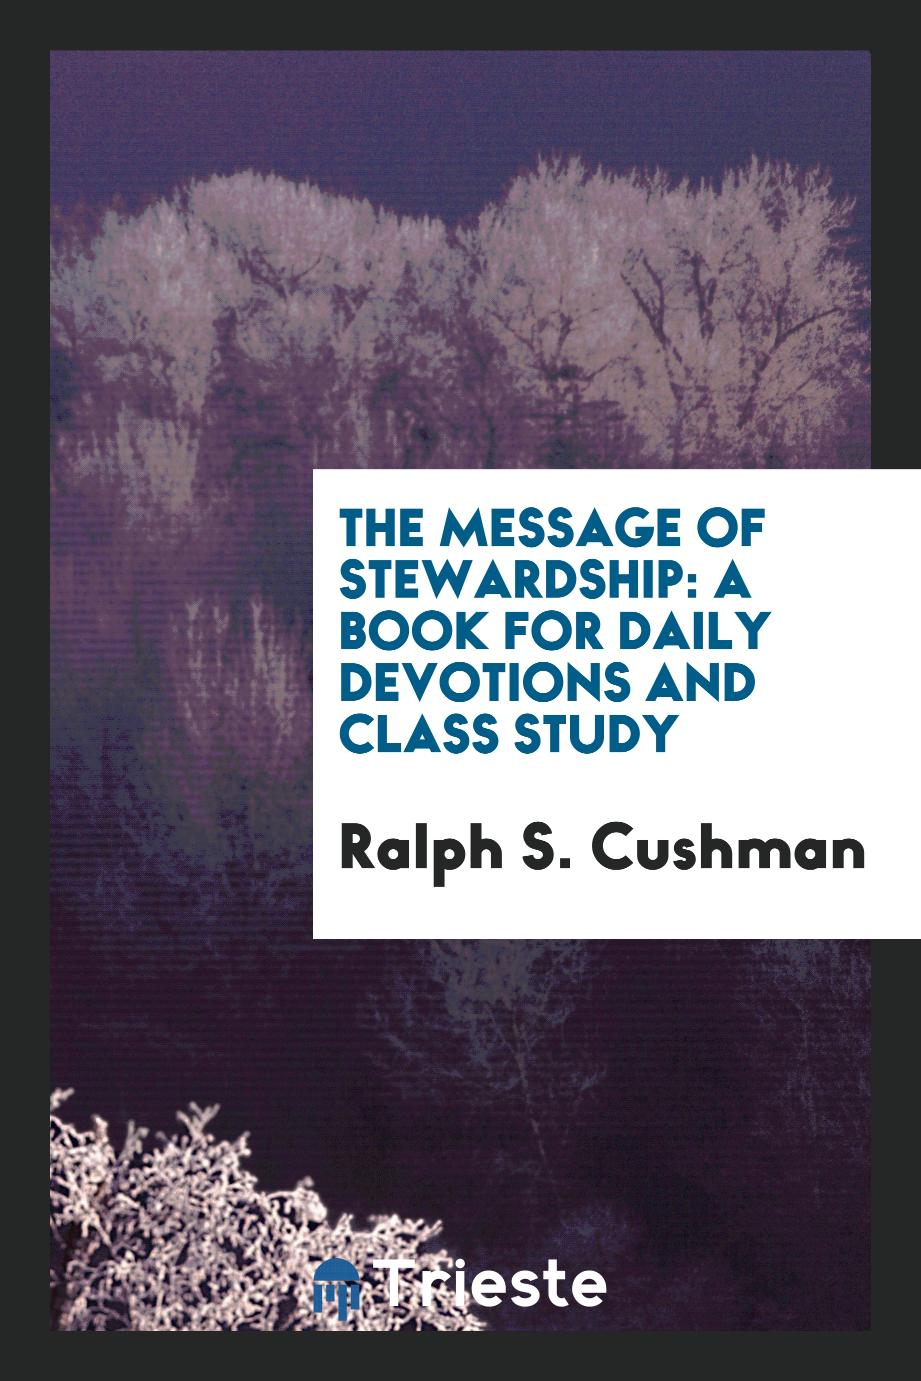 The message of stewardship: a book for daily devotions and class study